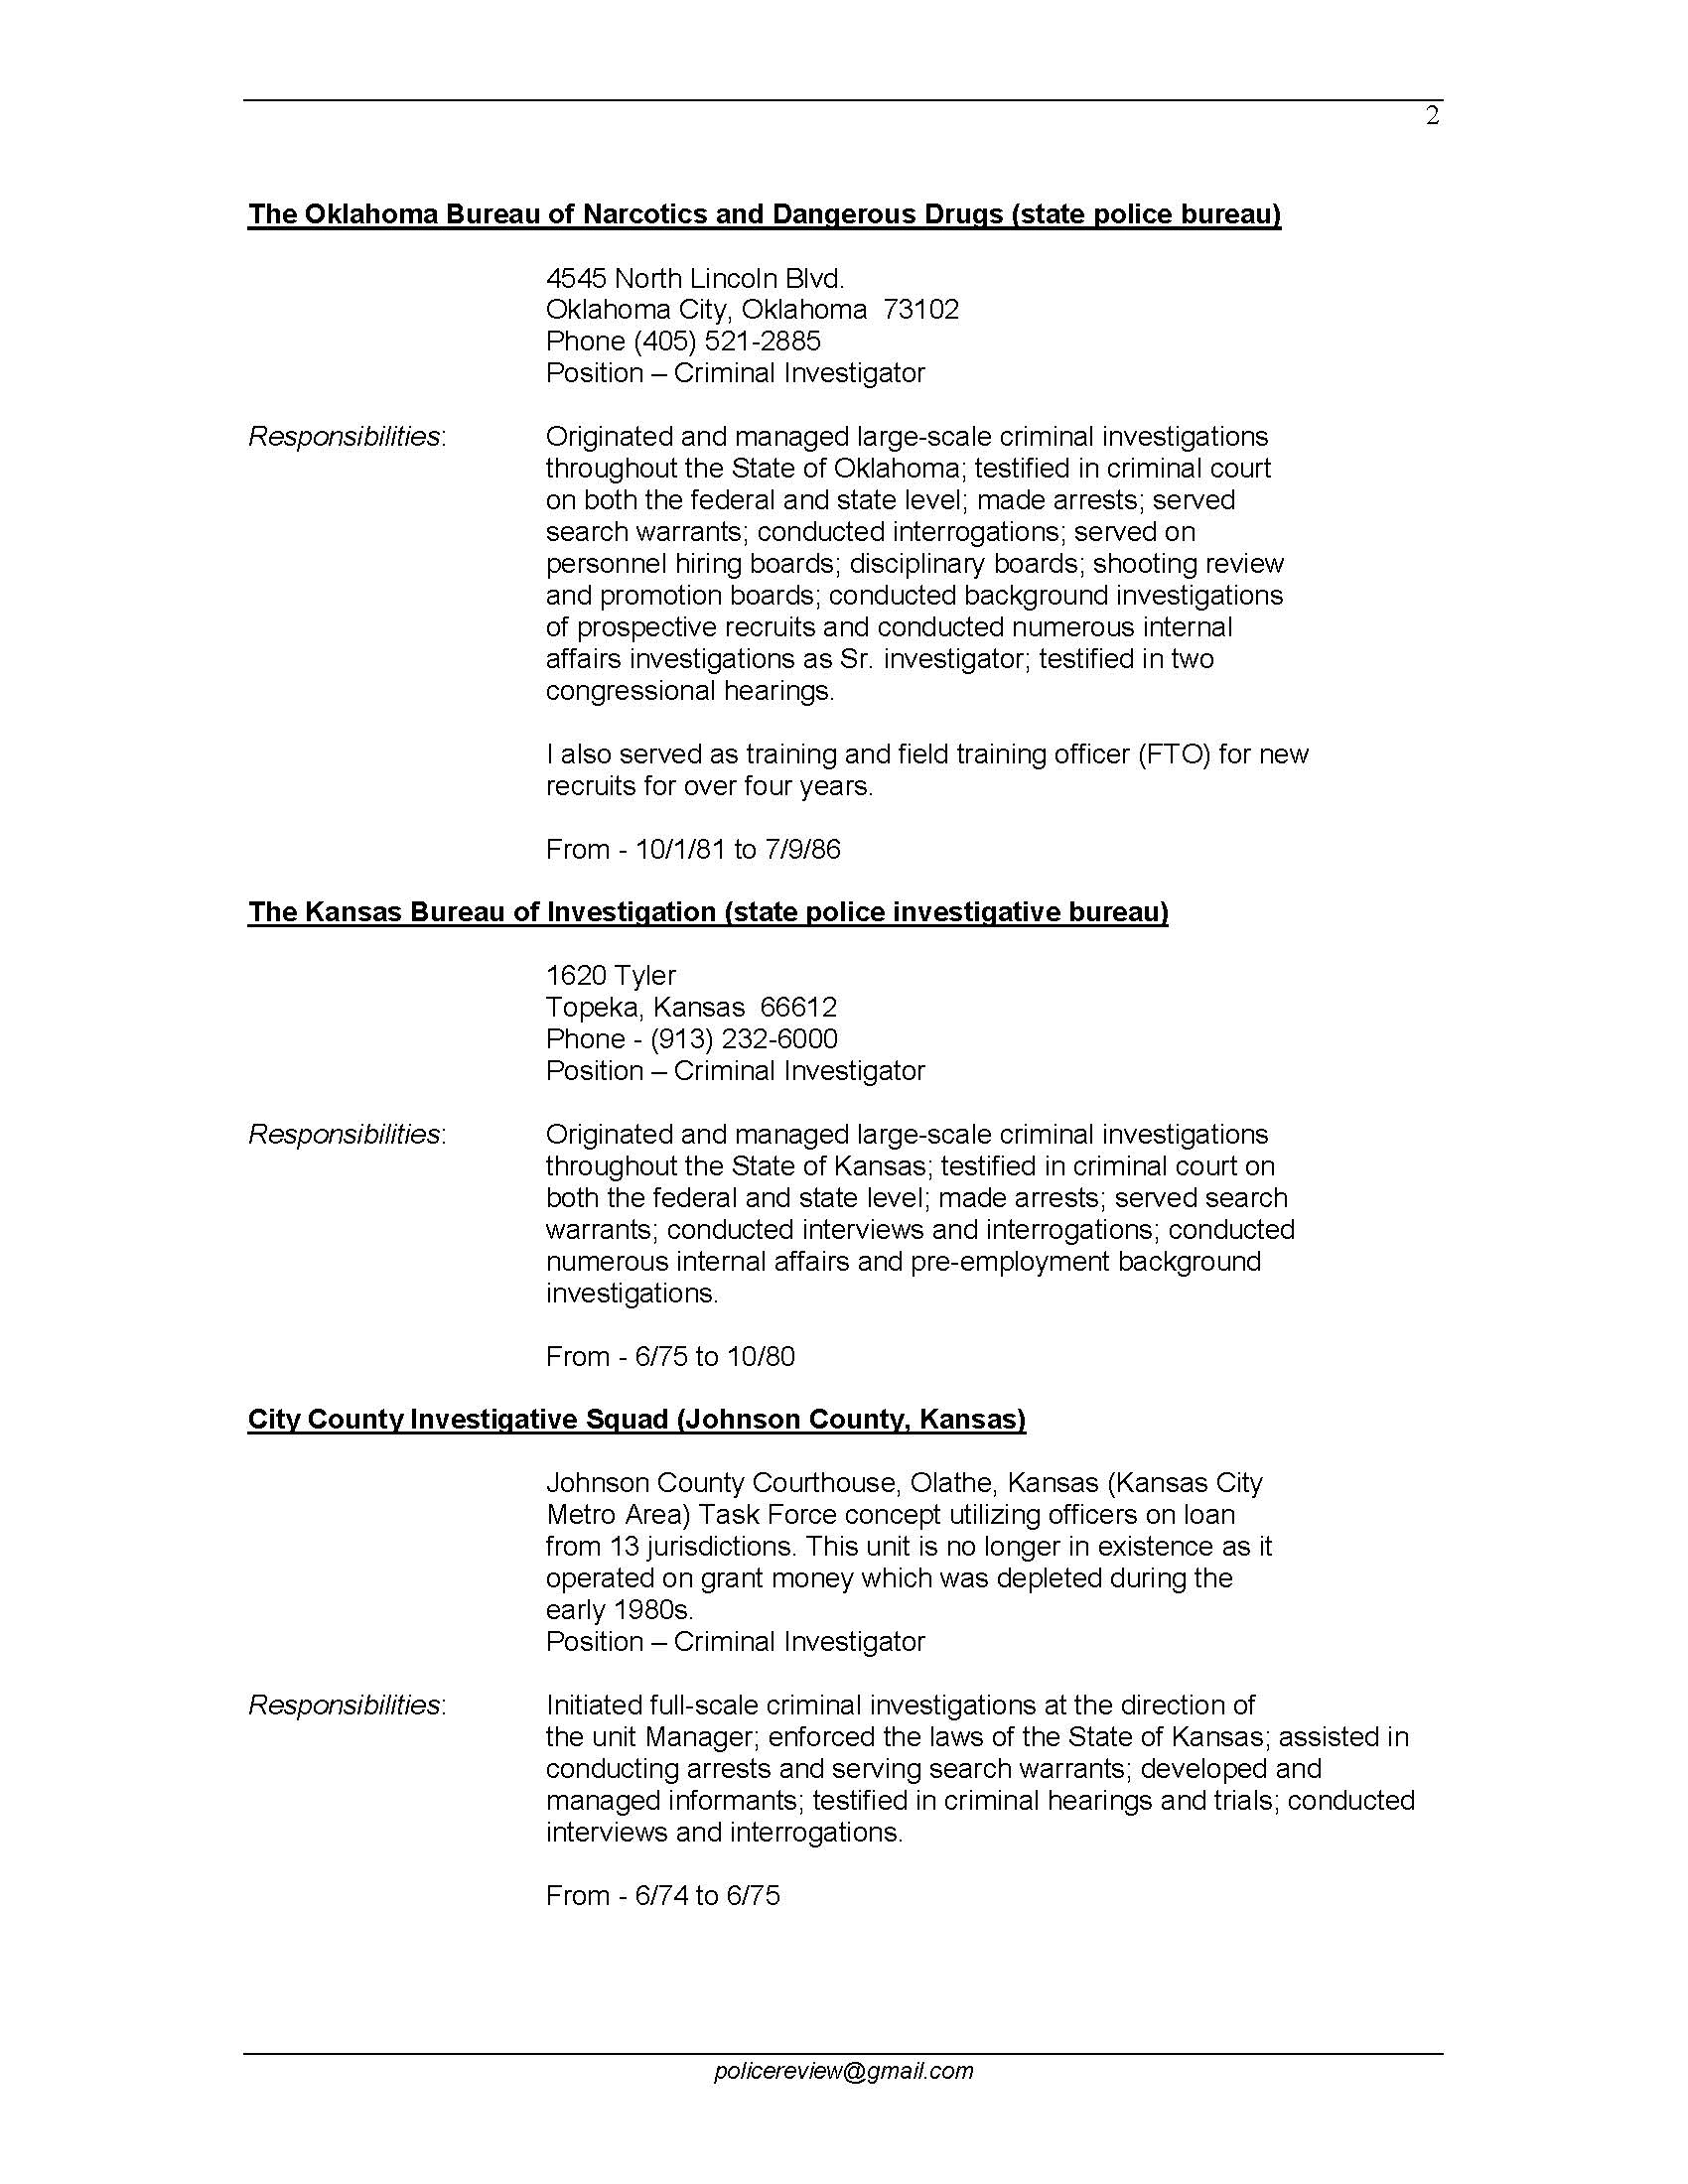 Pages from lyman expert cv